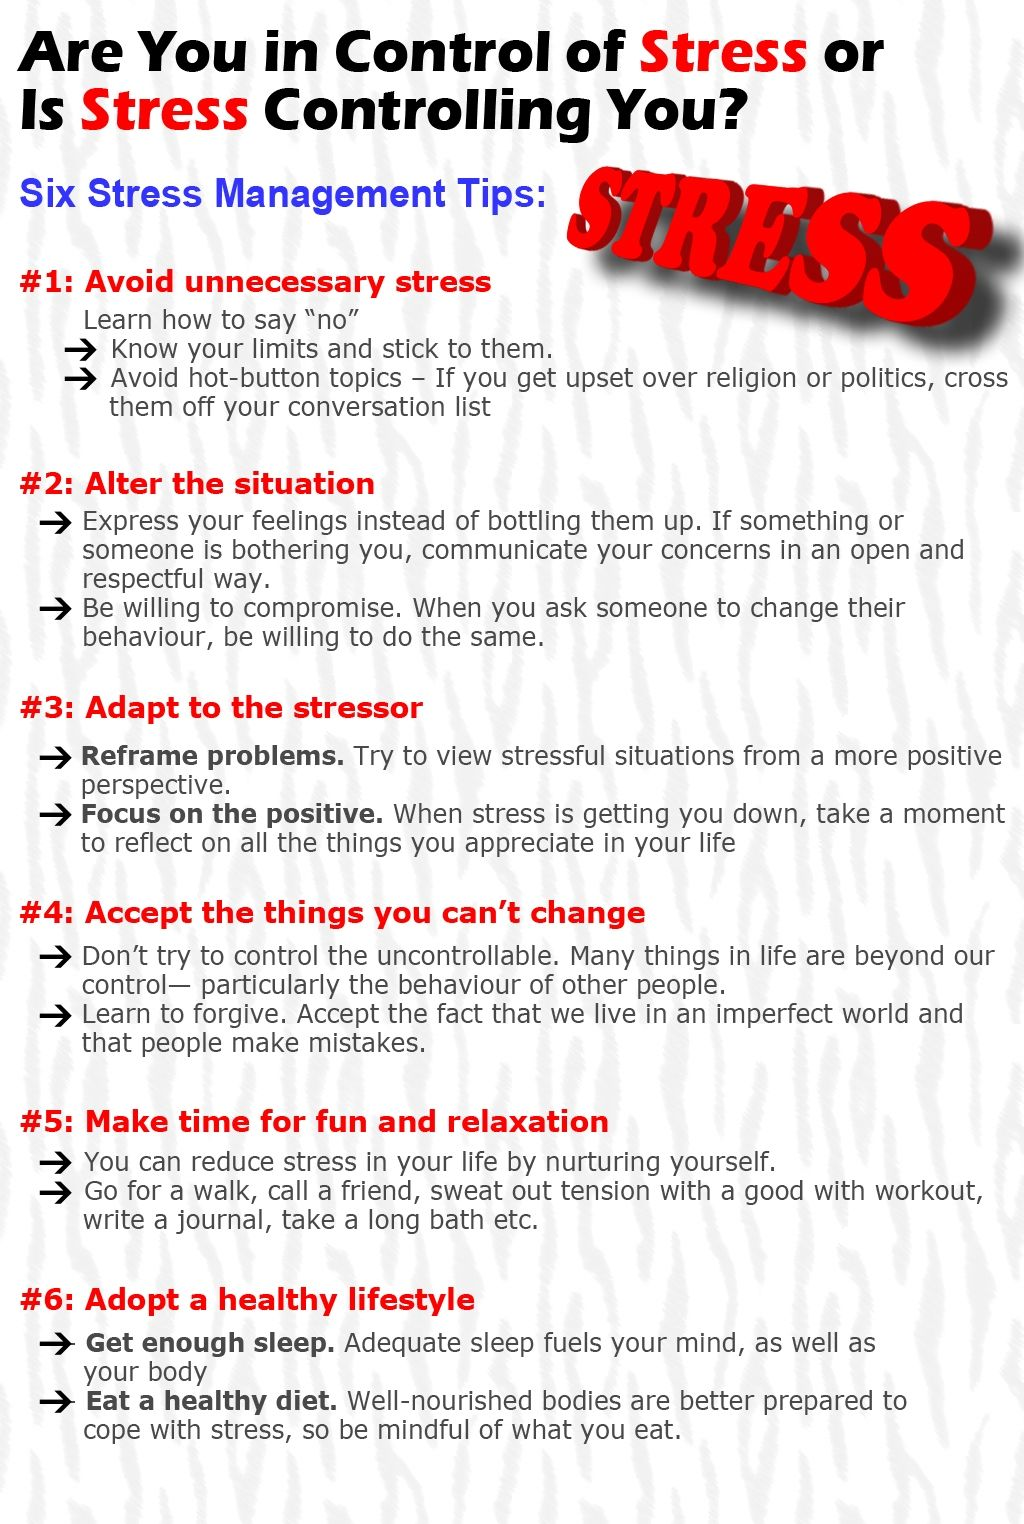 Are You In Control Of Stress Or Is Stress Controlling